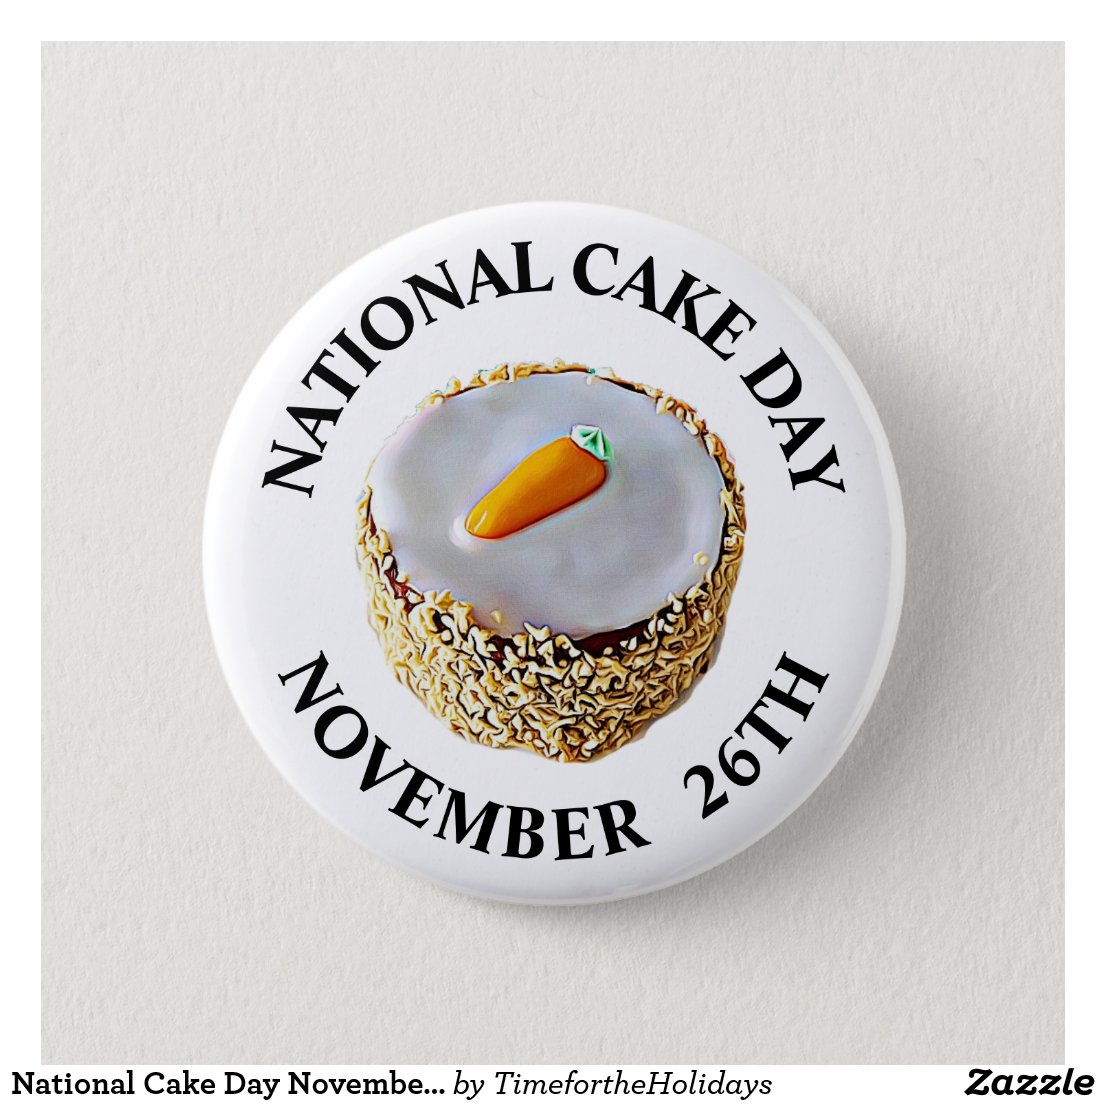 National Cake Day November 26th Holiday Button